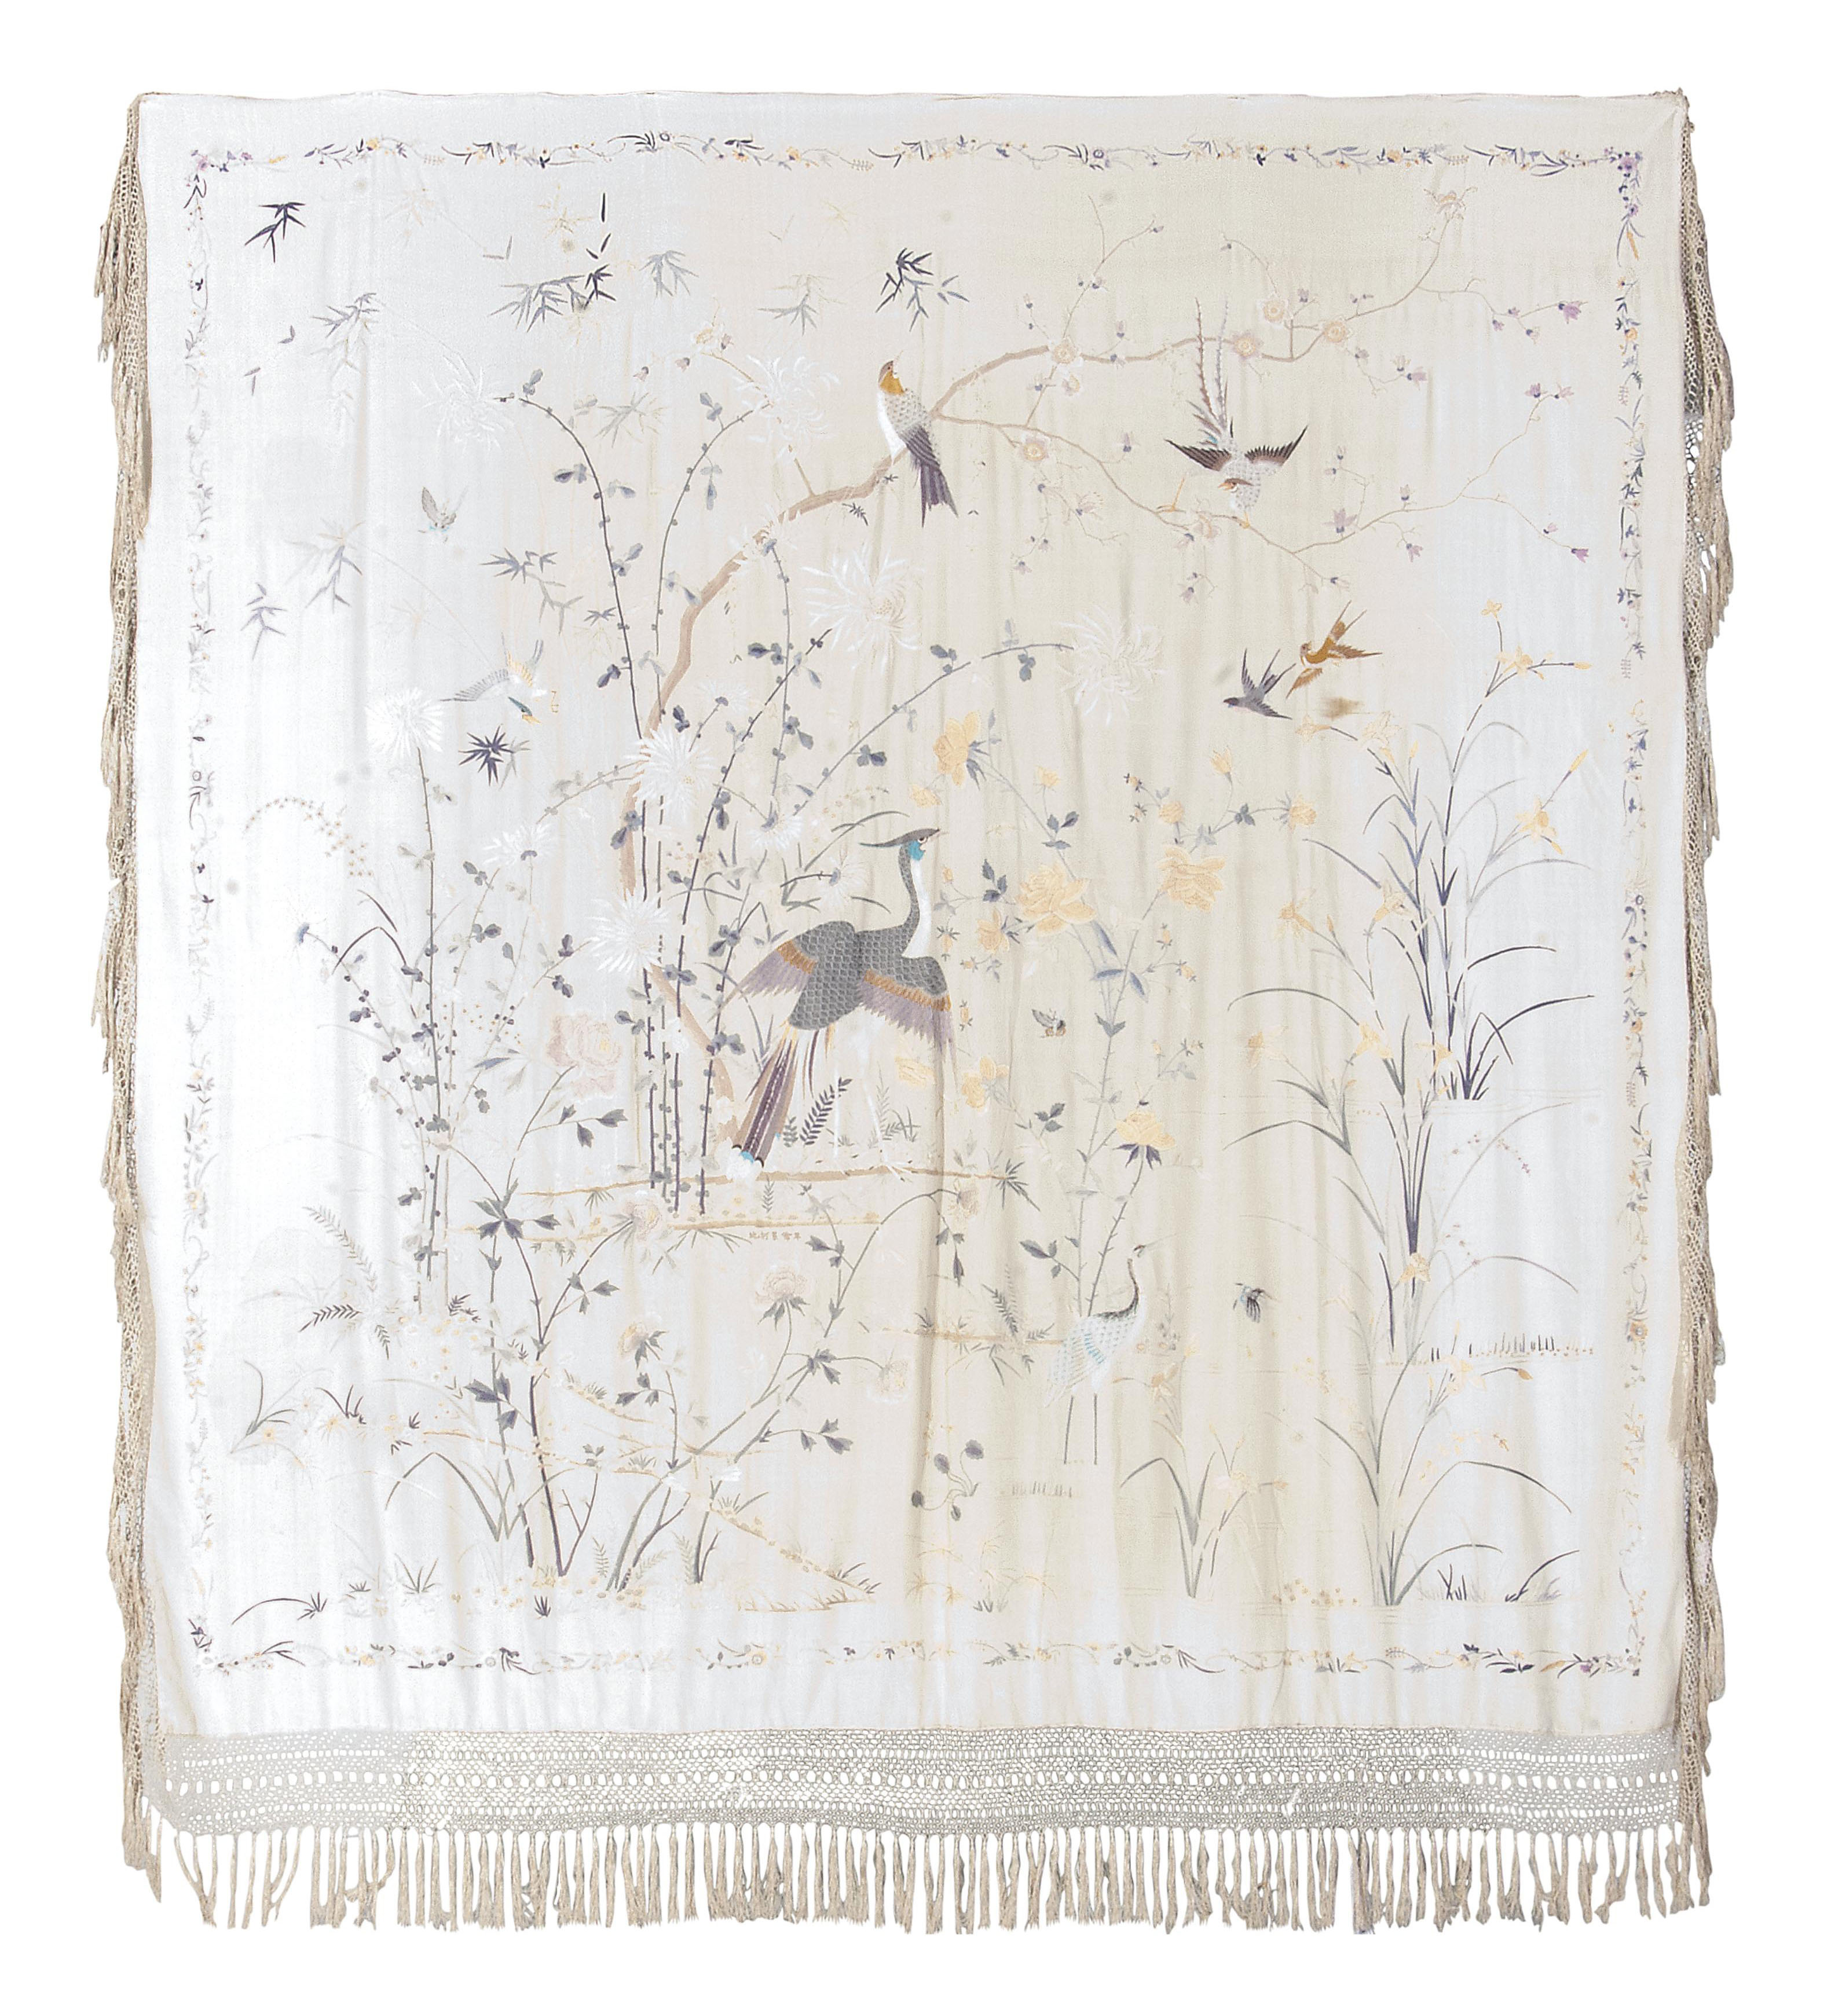 AN EMBROIDERED HANGING